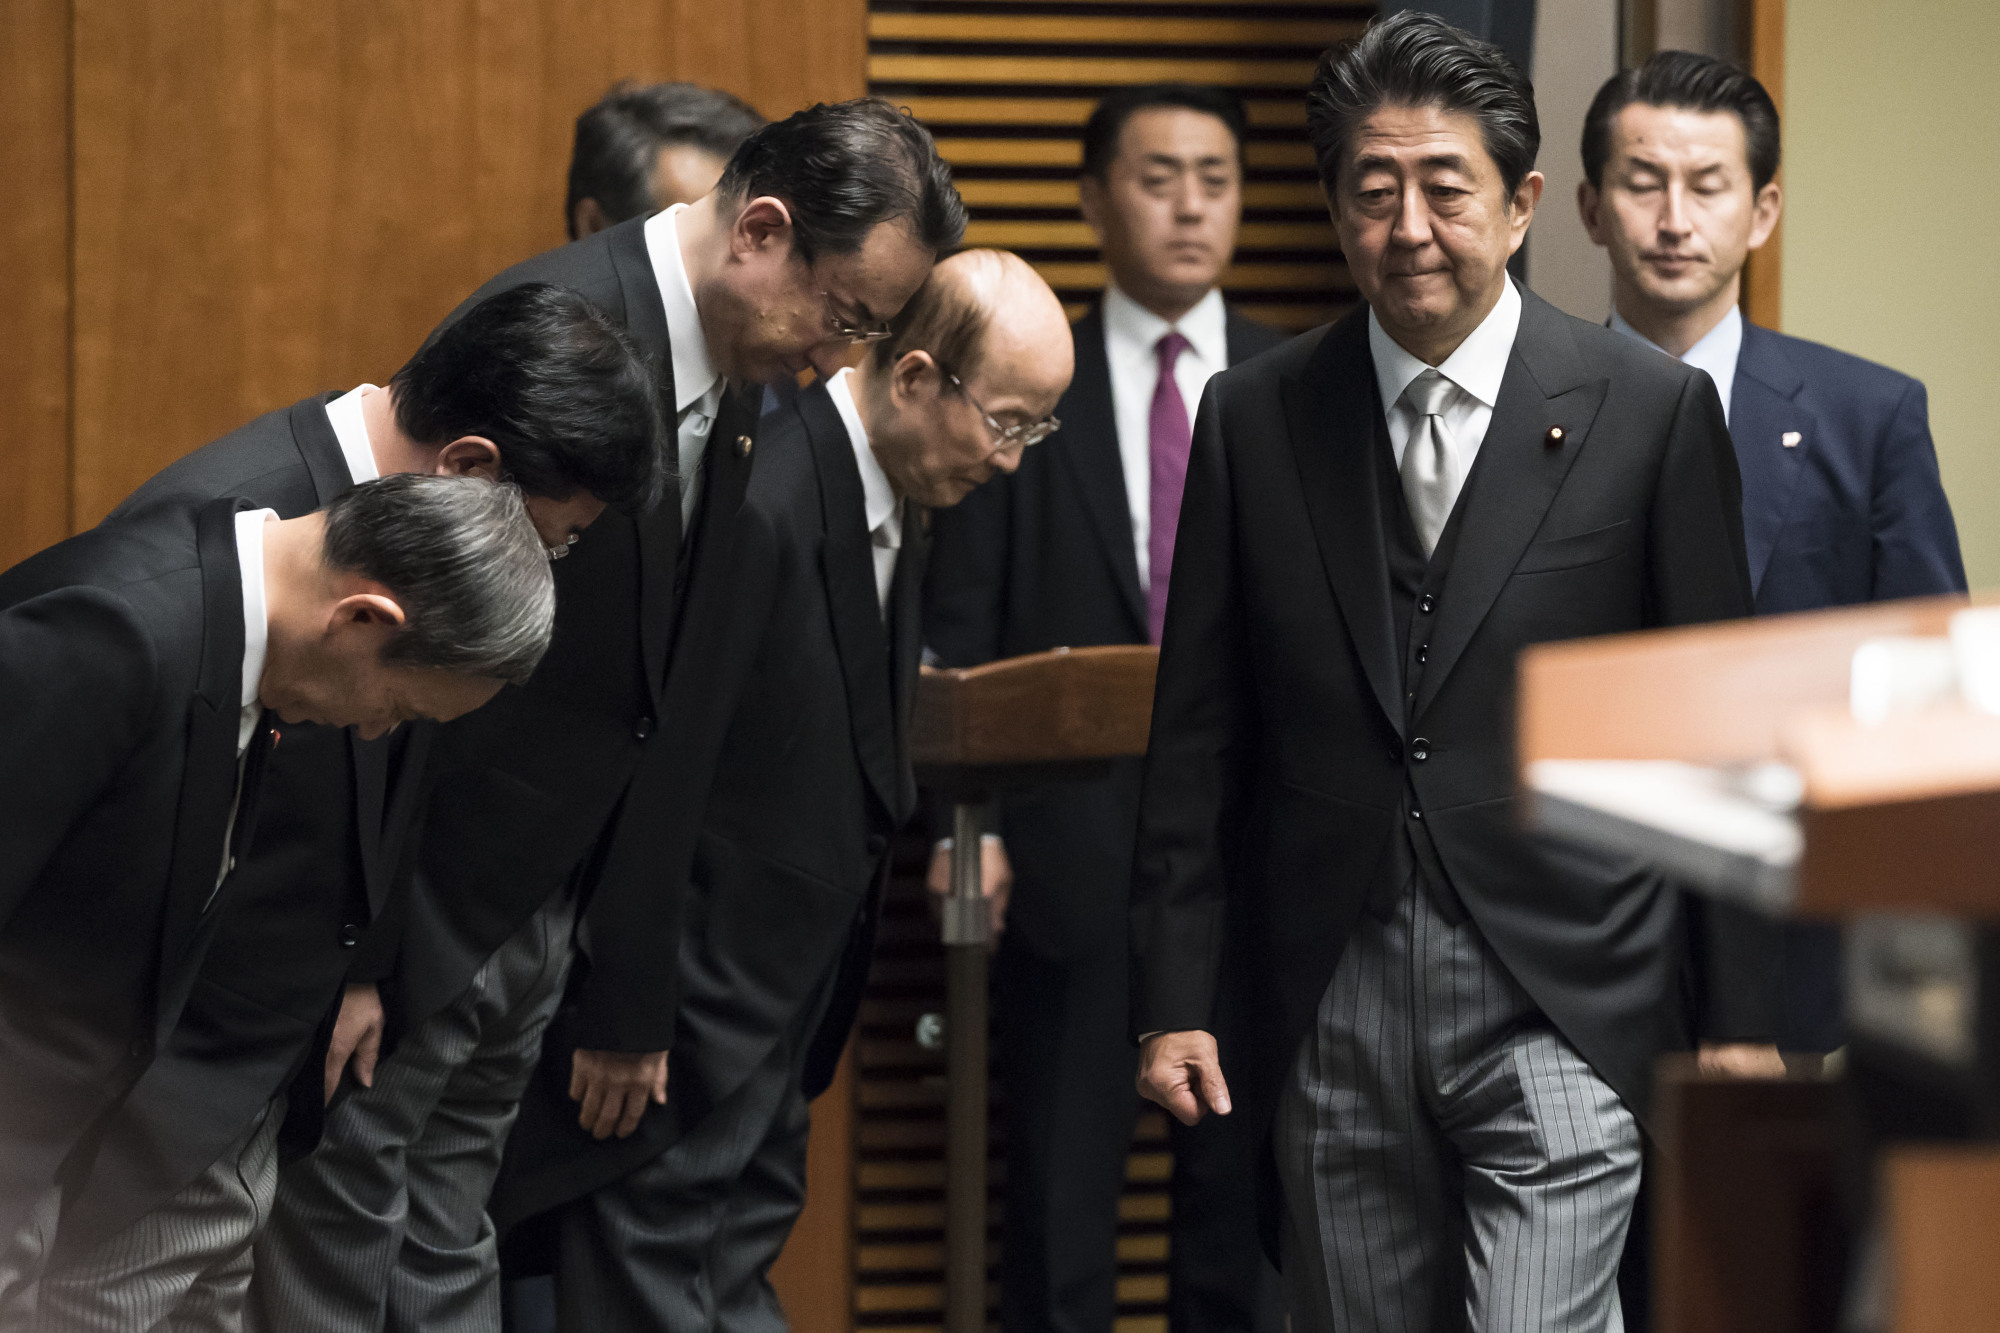 Prime Minister Shinzo Abe's Cabinet reshuffle is aimed at advancing his national agenda. | BLOOMBERG